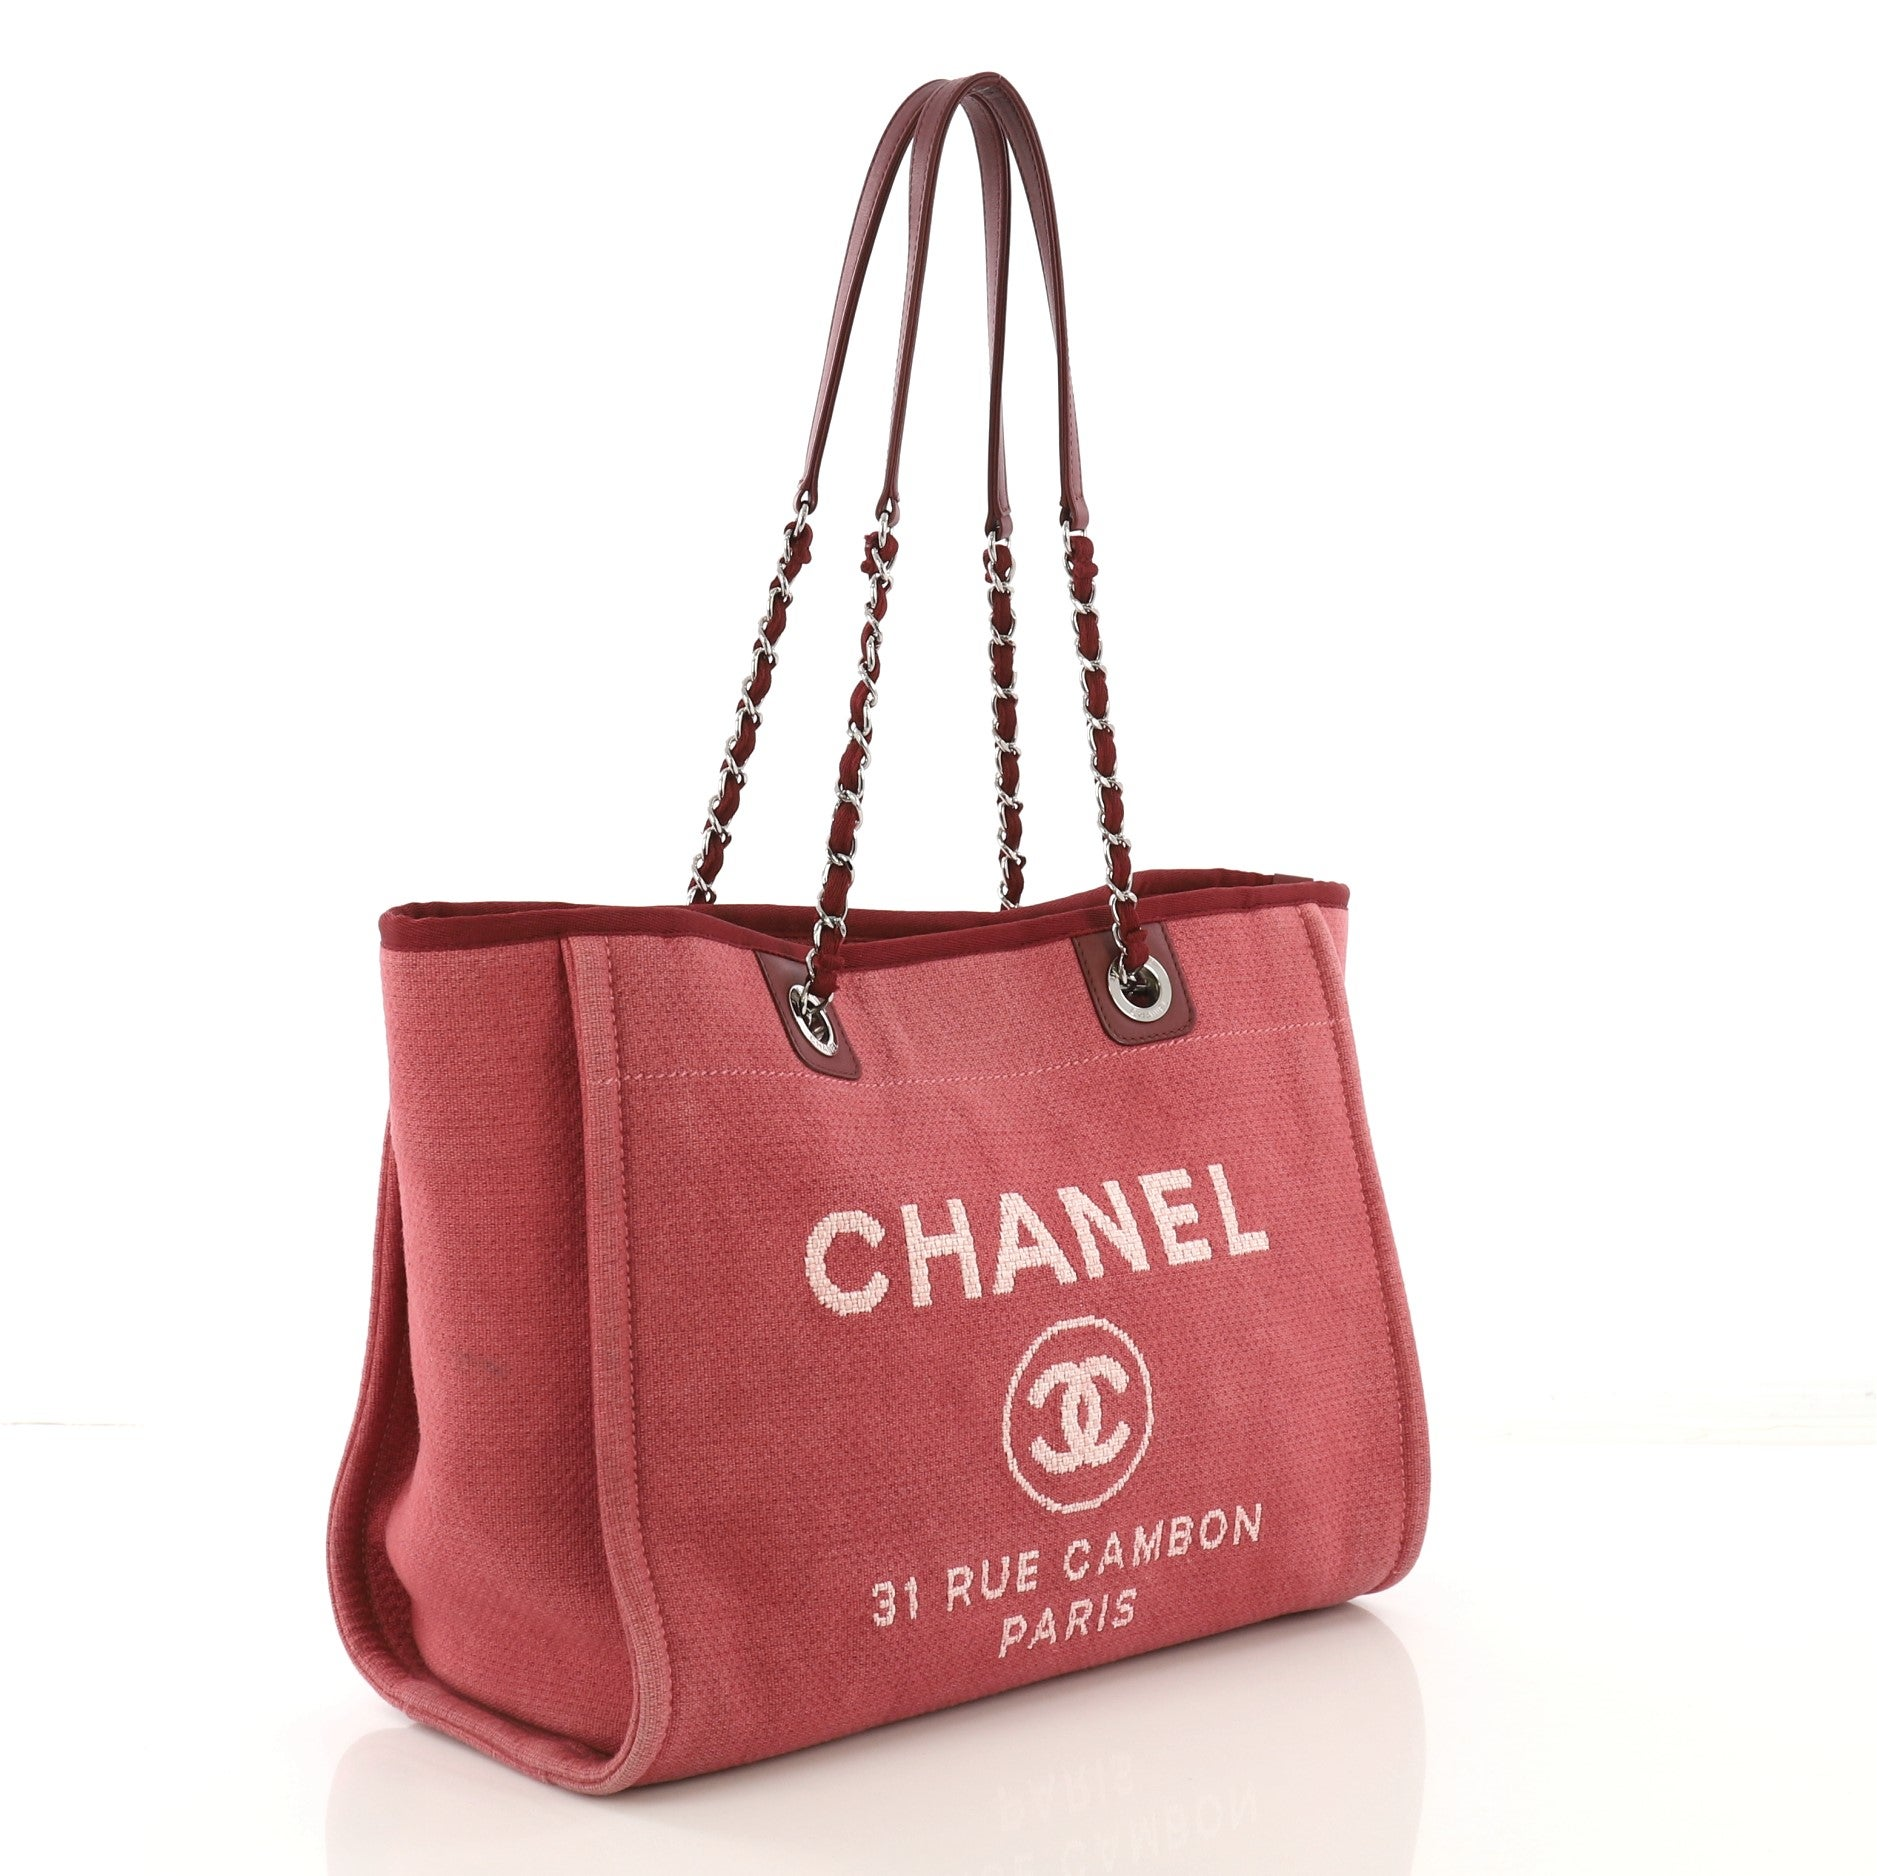 9d7a1385 Chanel Deauville Chain Tote Canvas Small